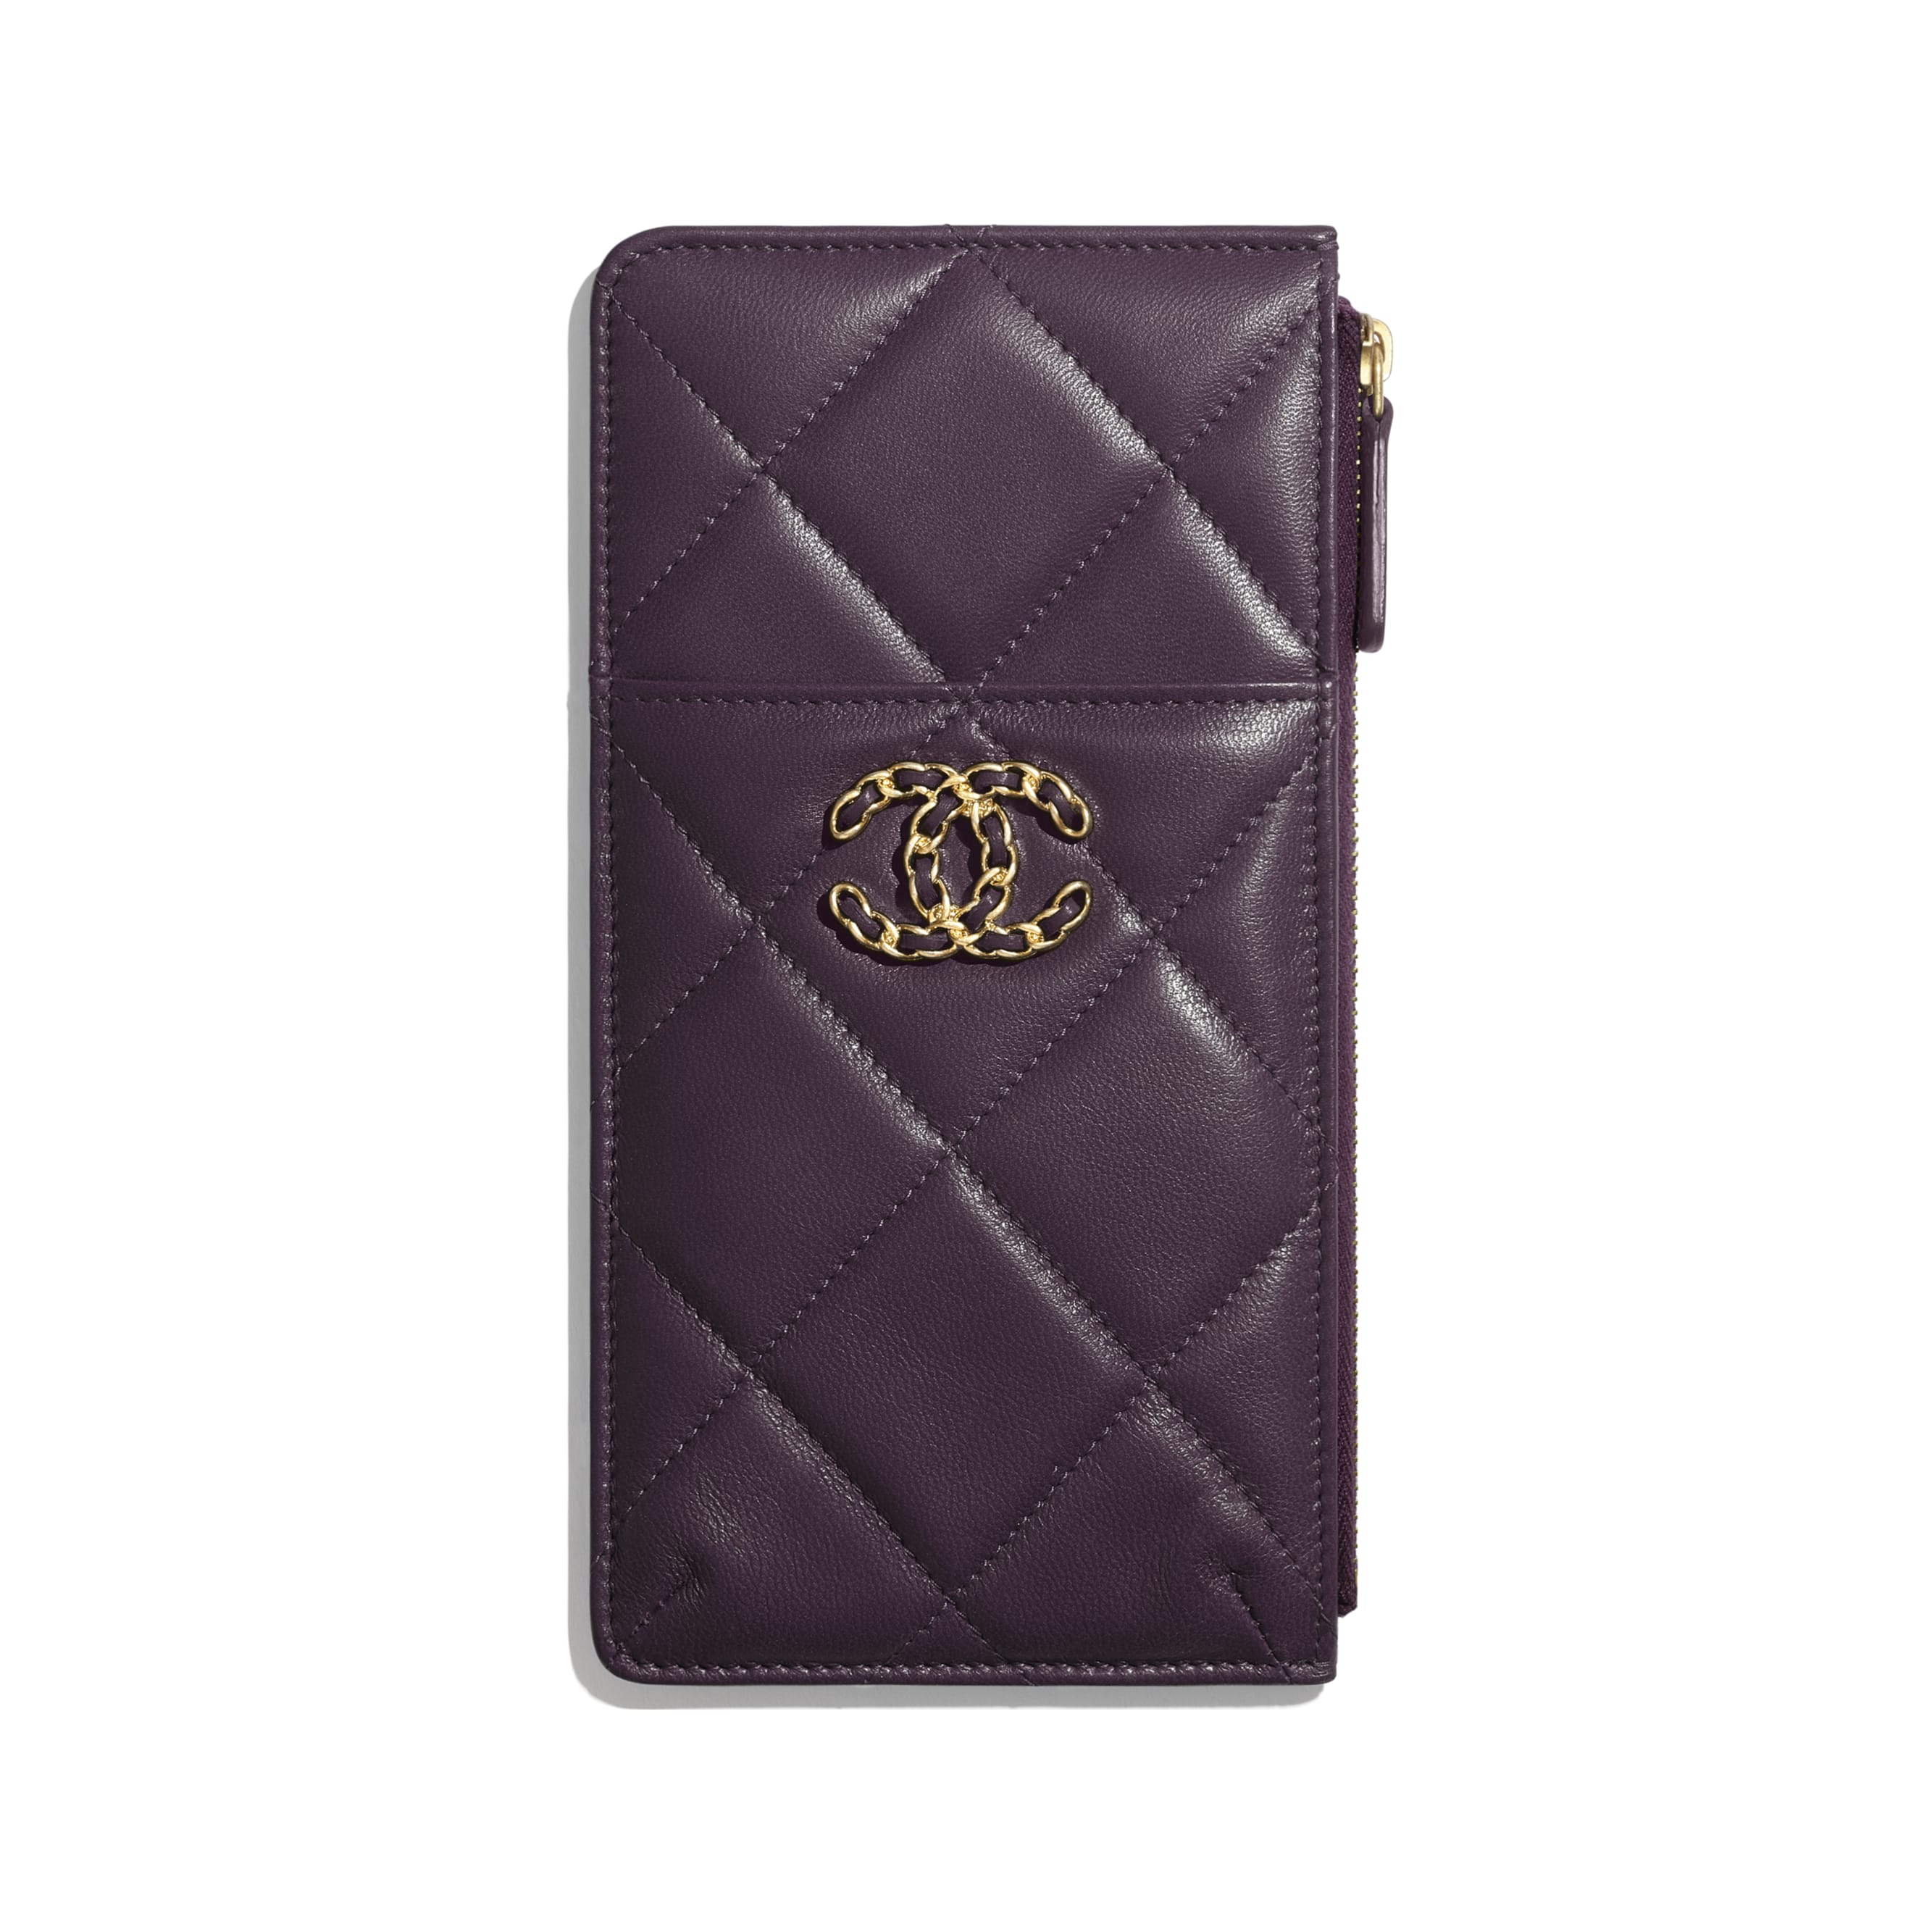 CHANEL 19 Phone & Card Holder - Purple - Shiny Goatskin & Gold-Tone Metal - CHANEL - Default view - see standard sized version